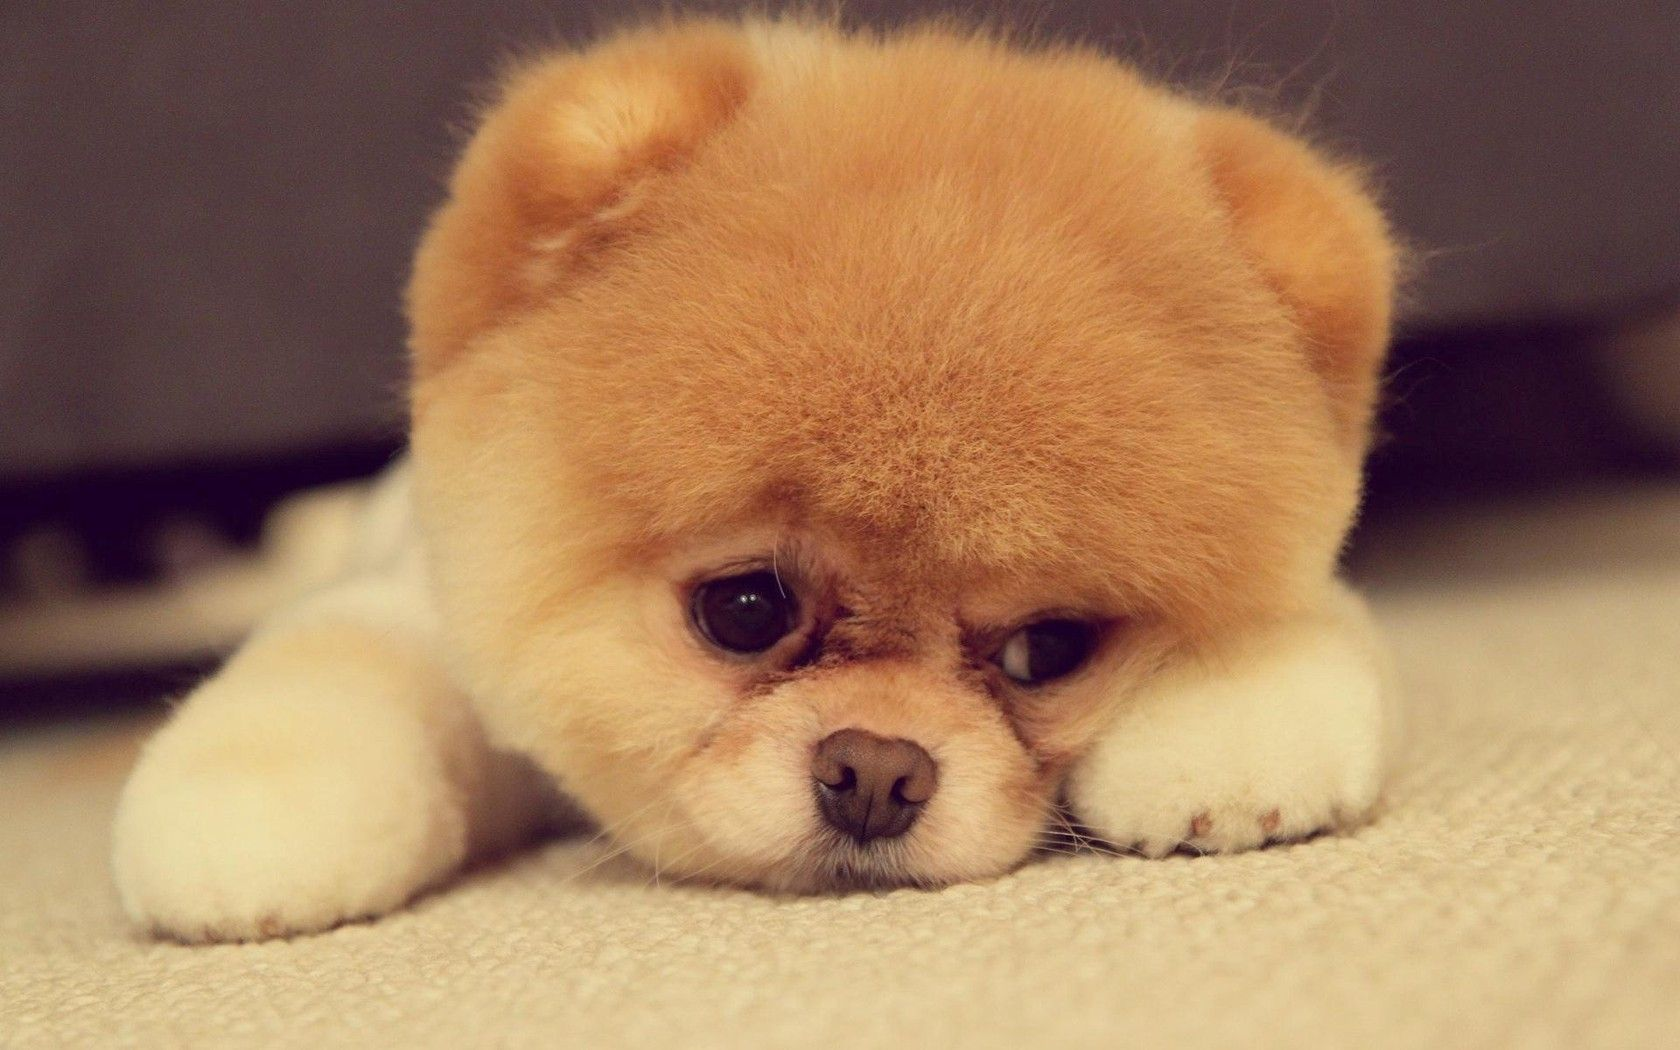 Cute dog wallpapers wallpaper cute dogs pictures